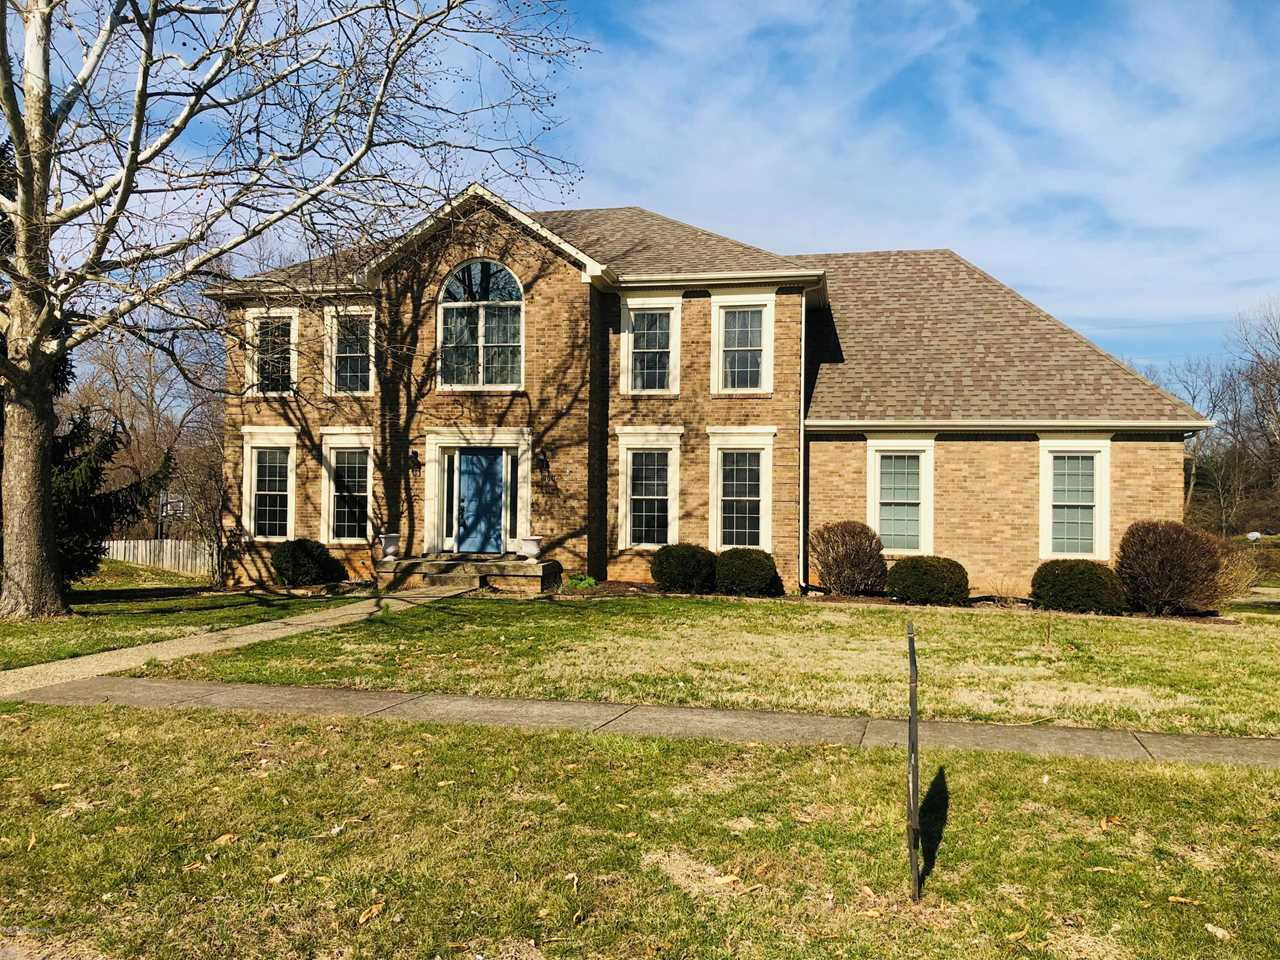 900 Foxfire Dr Louisville, KY 40223 | MLS 1523575 Photo 1